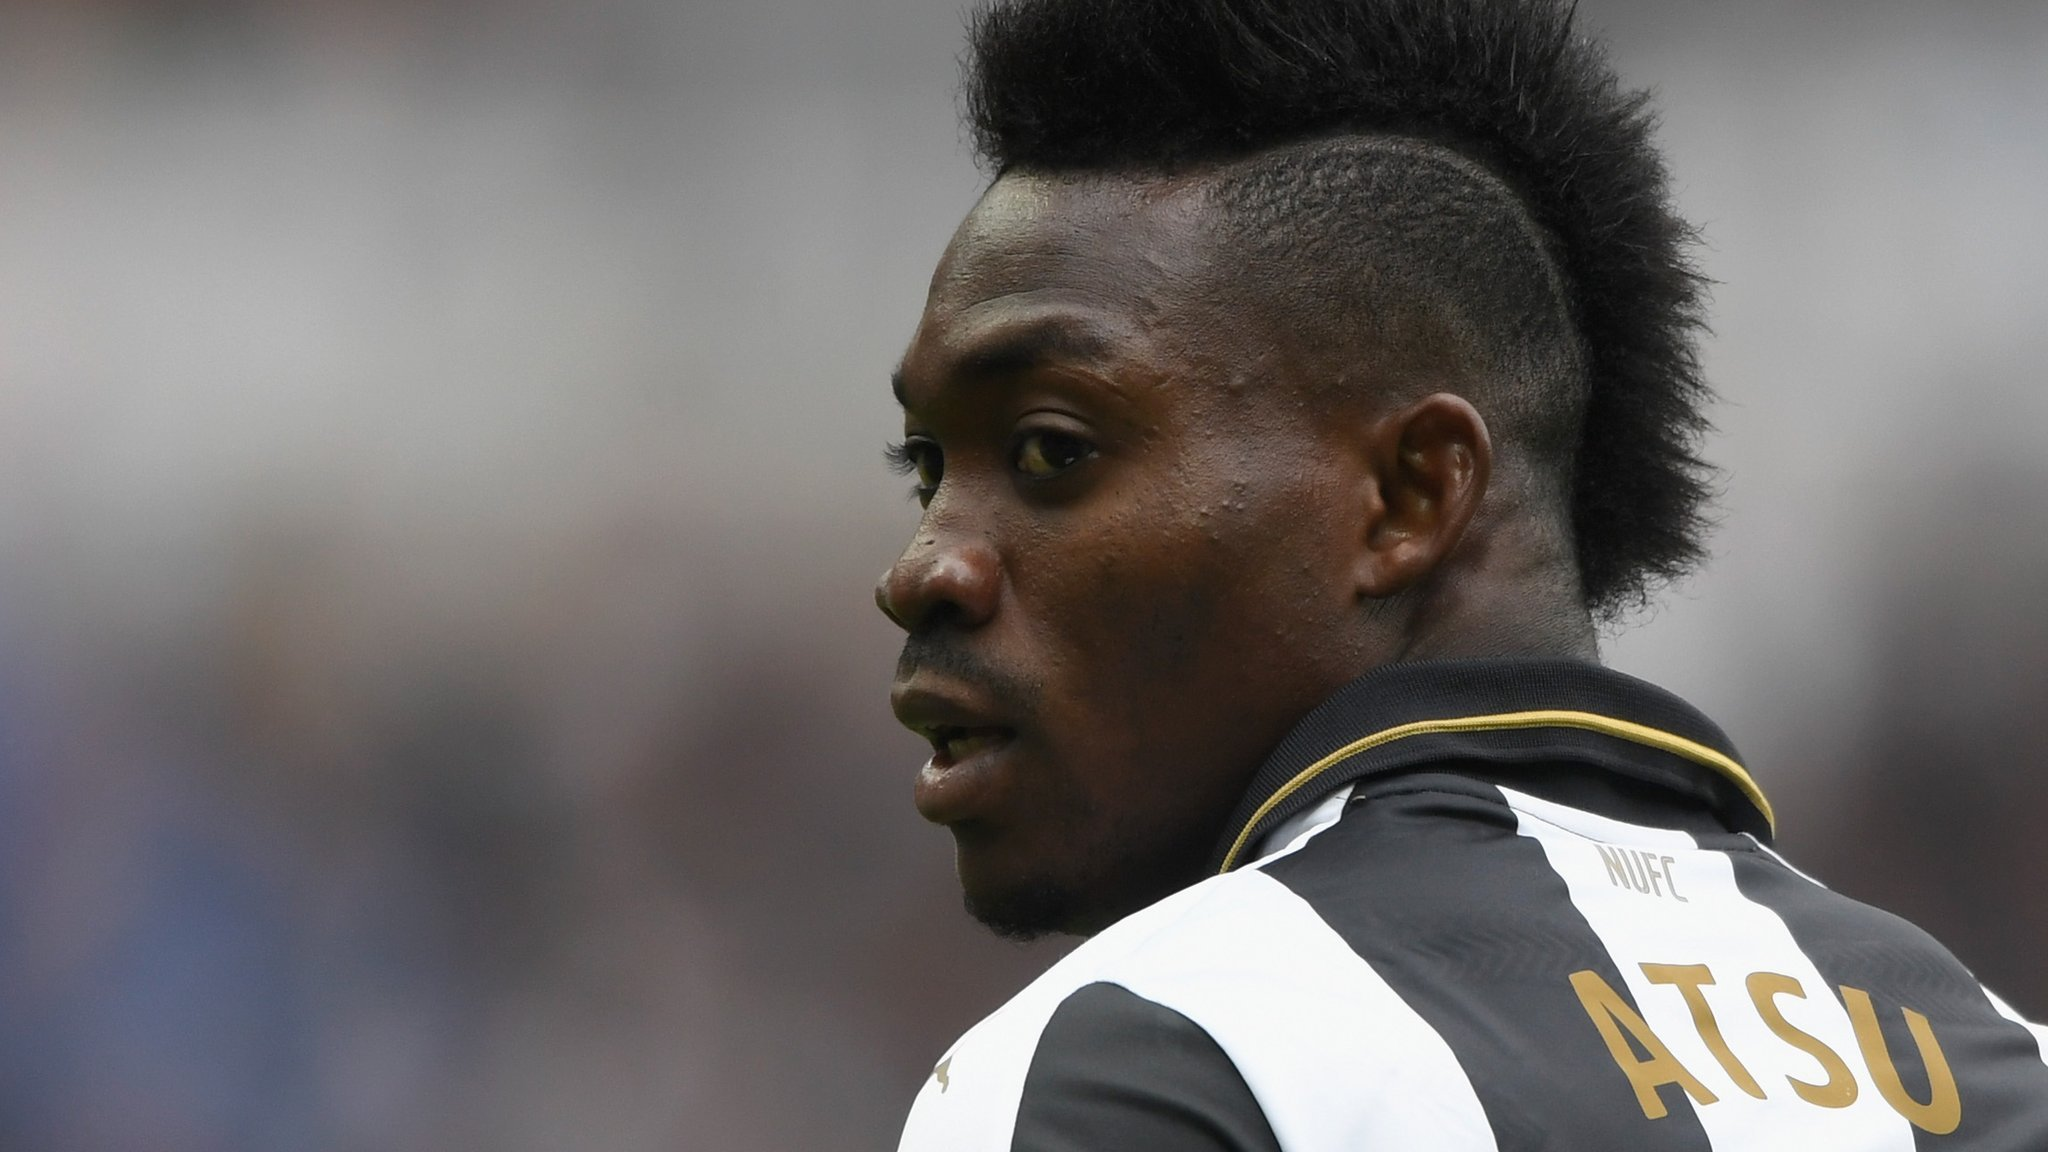 Christian Atsu: Newcastle United sign Chelsea winger on permanent deal